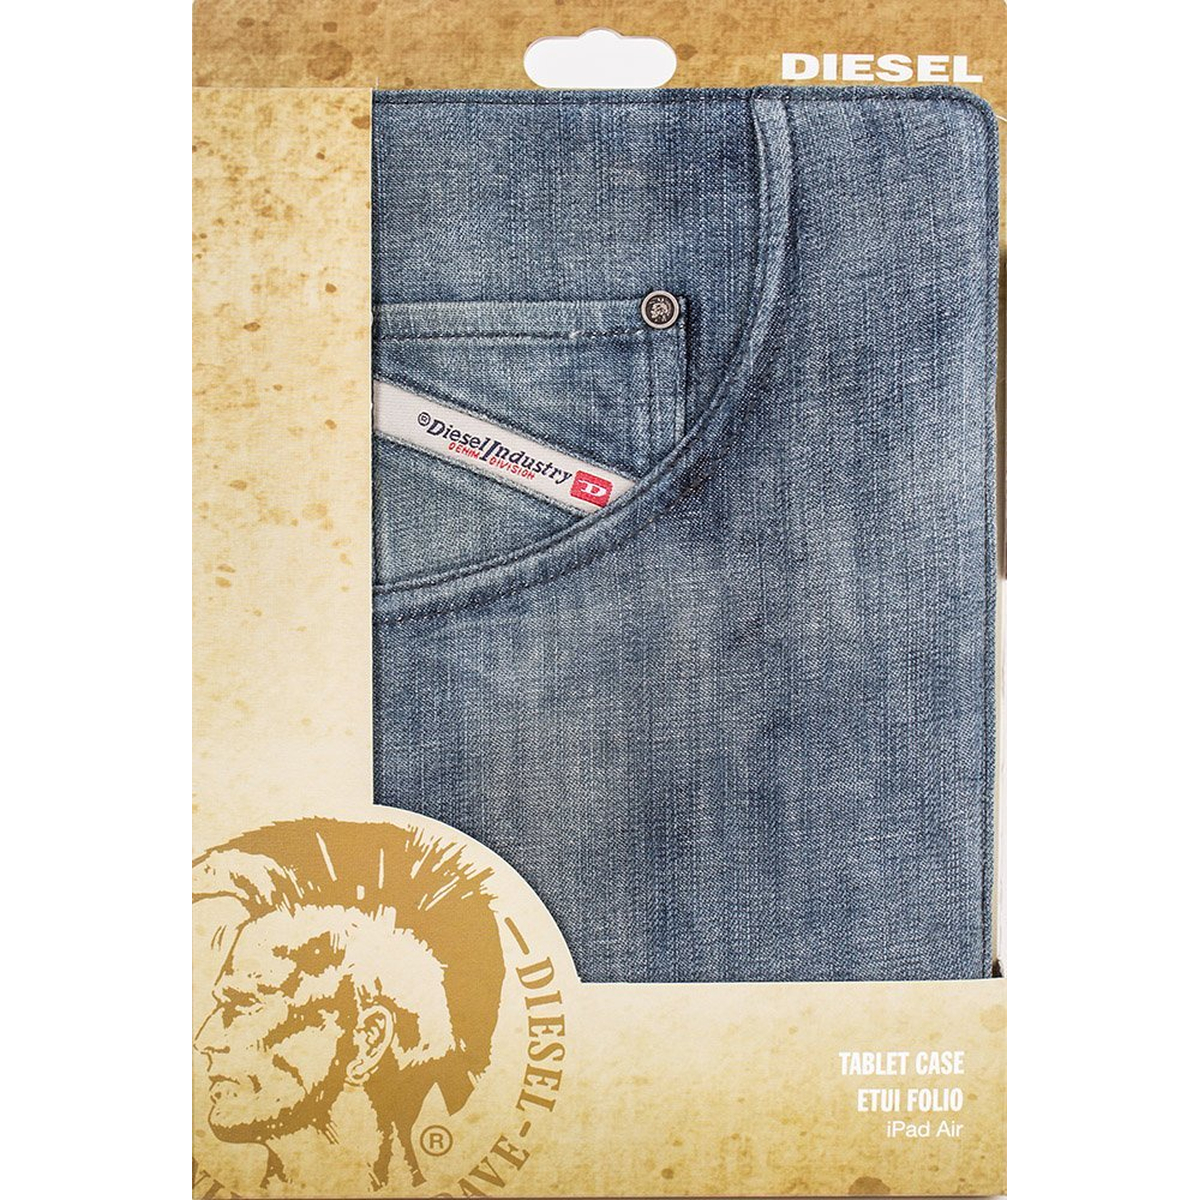 Diesel iPad Air Paddy Stand Booklet Case in Indigo blau